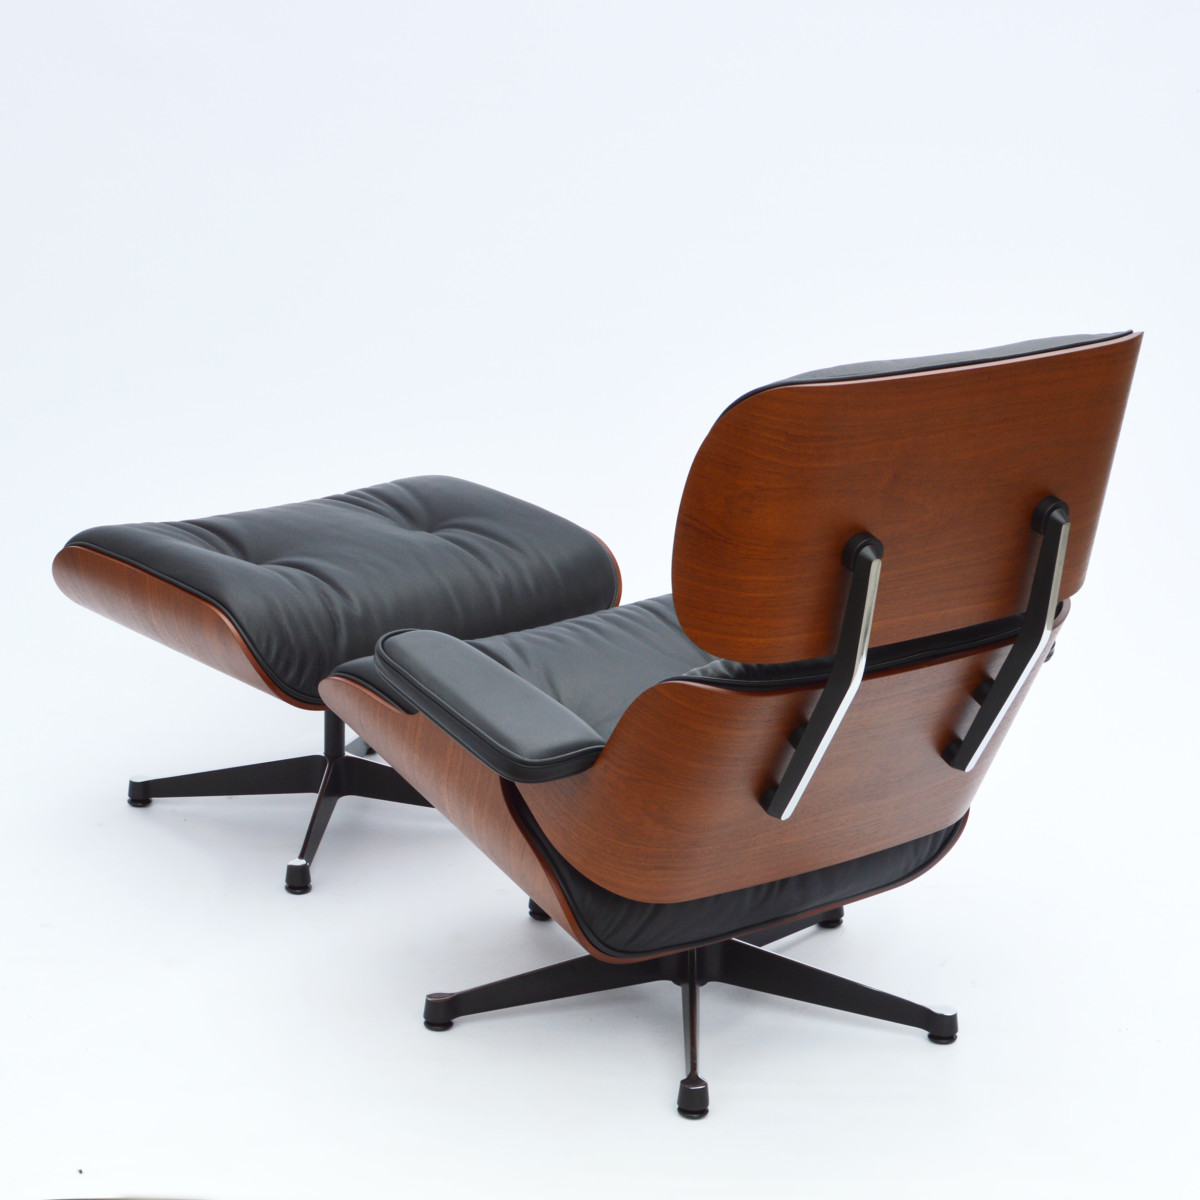 Superb Vitra Eames Lounge Chair Ottoman Mahagoni Creativecarmelina Interior Chair Design Creativecarmelinacom